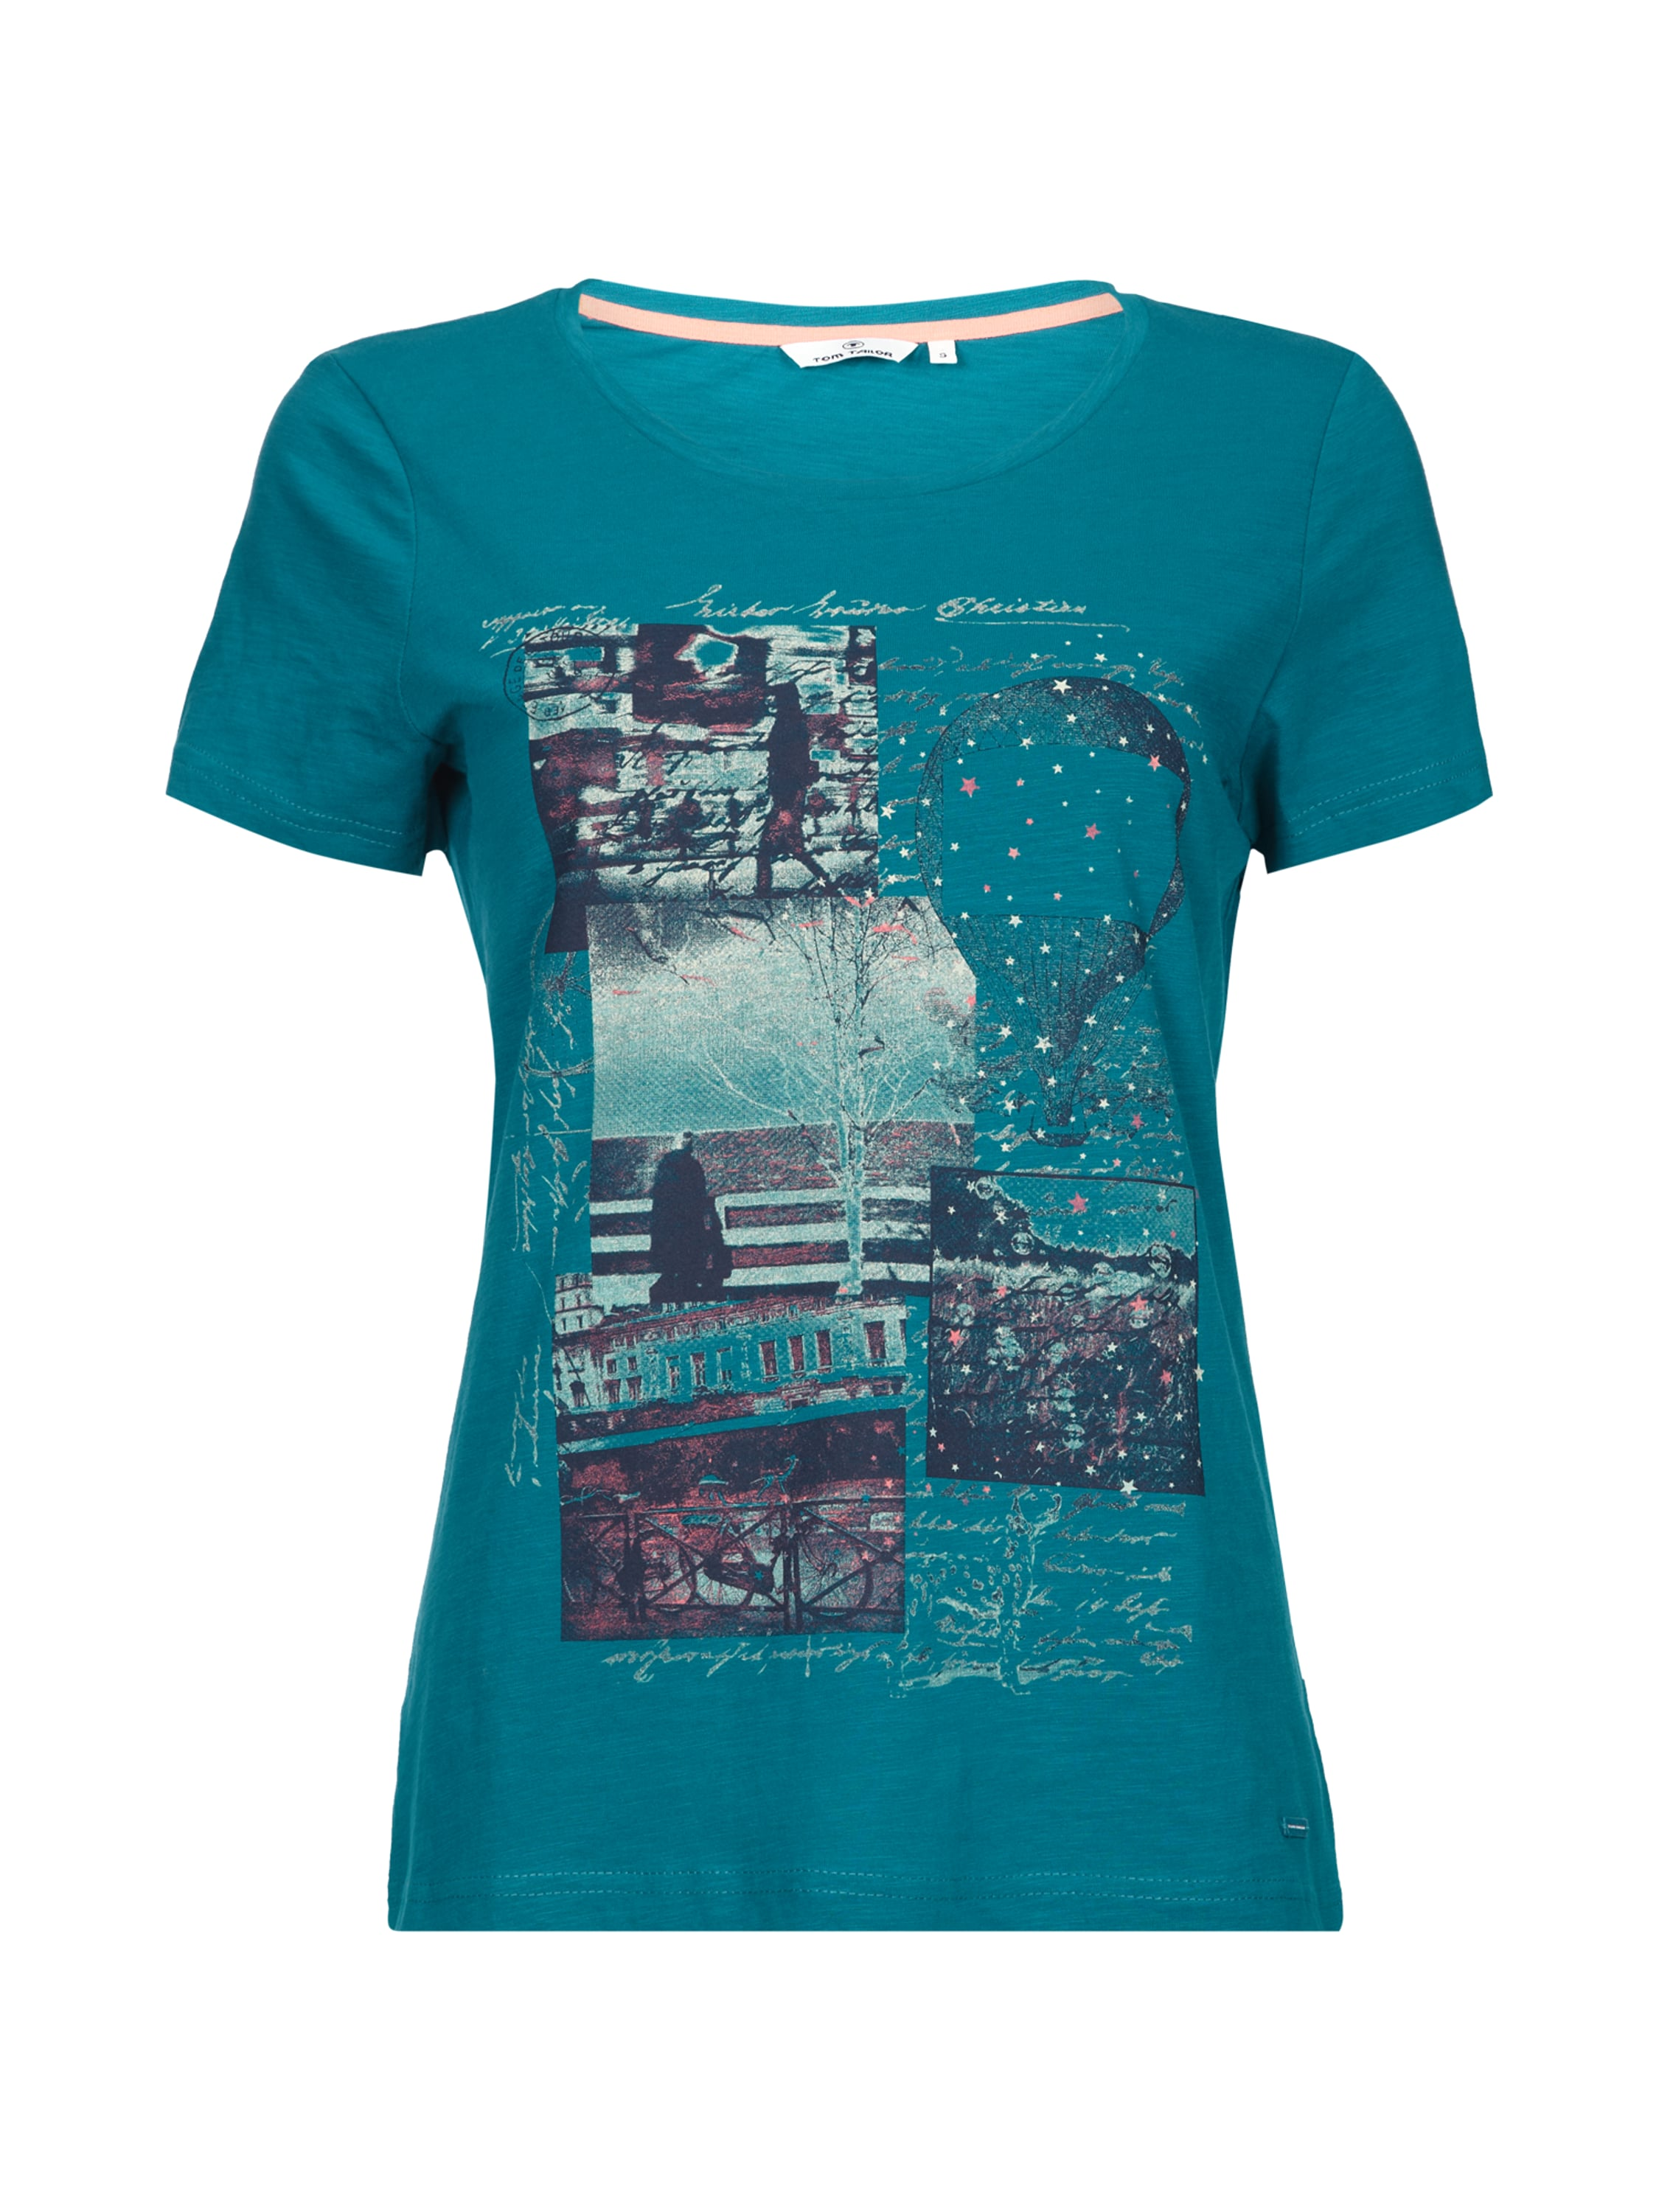 Tom tailor t shirt mit print in gr n online kaufen for Tailored t shirts online